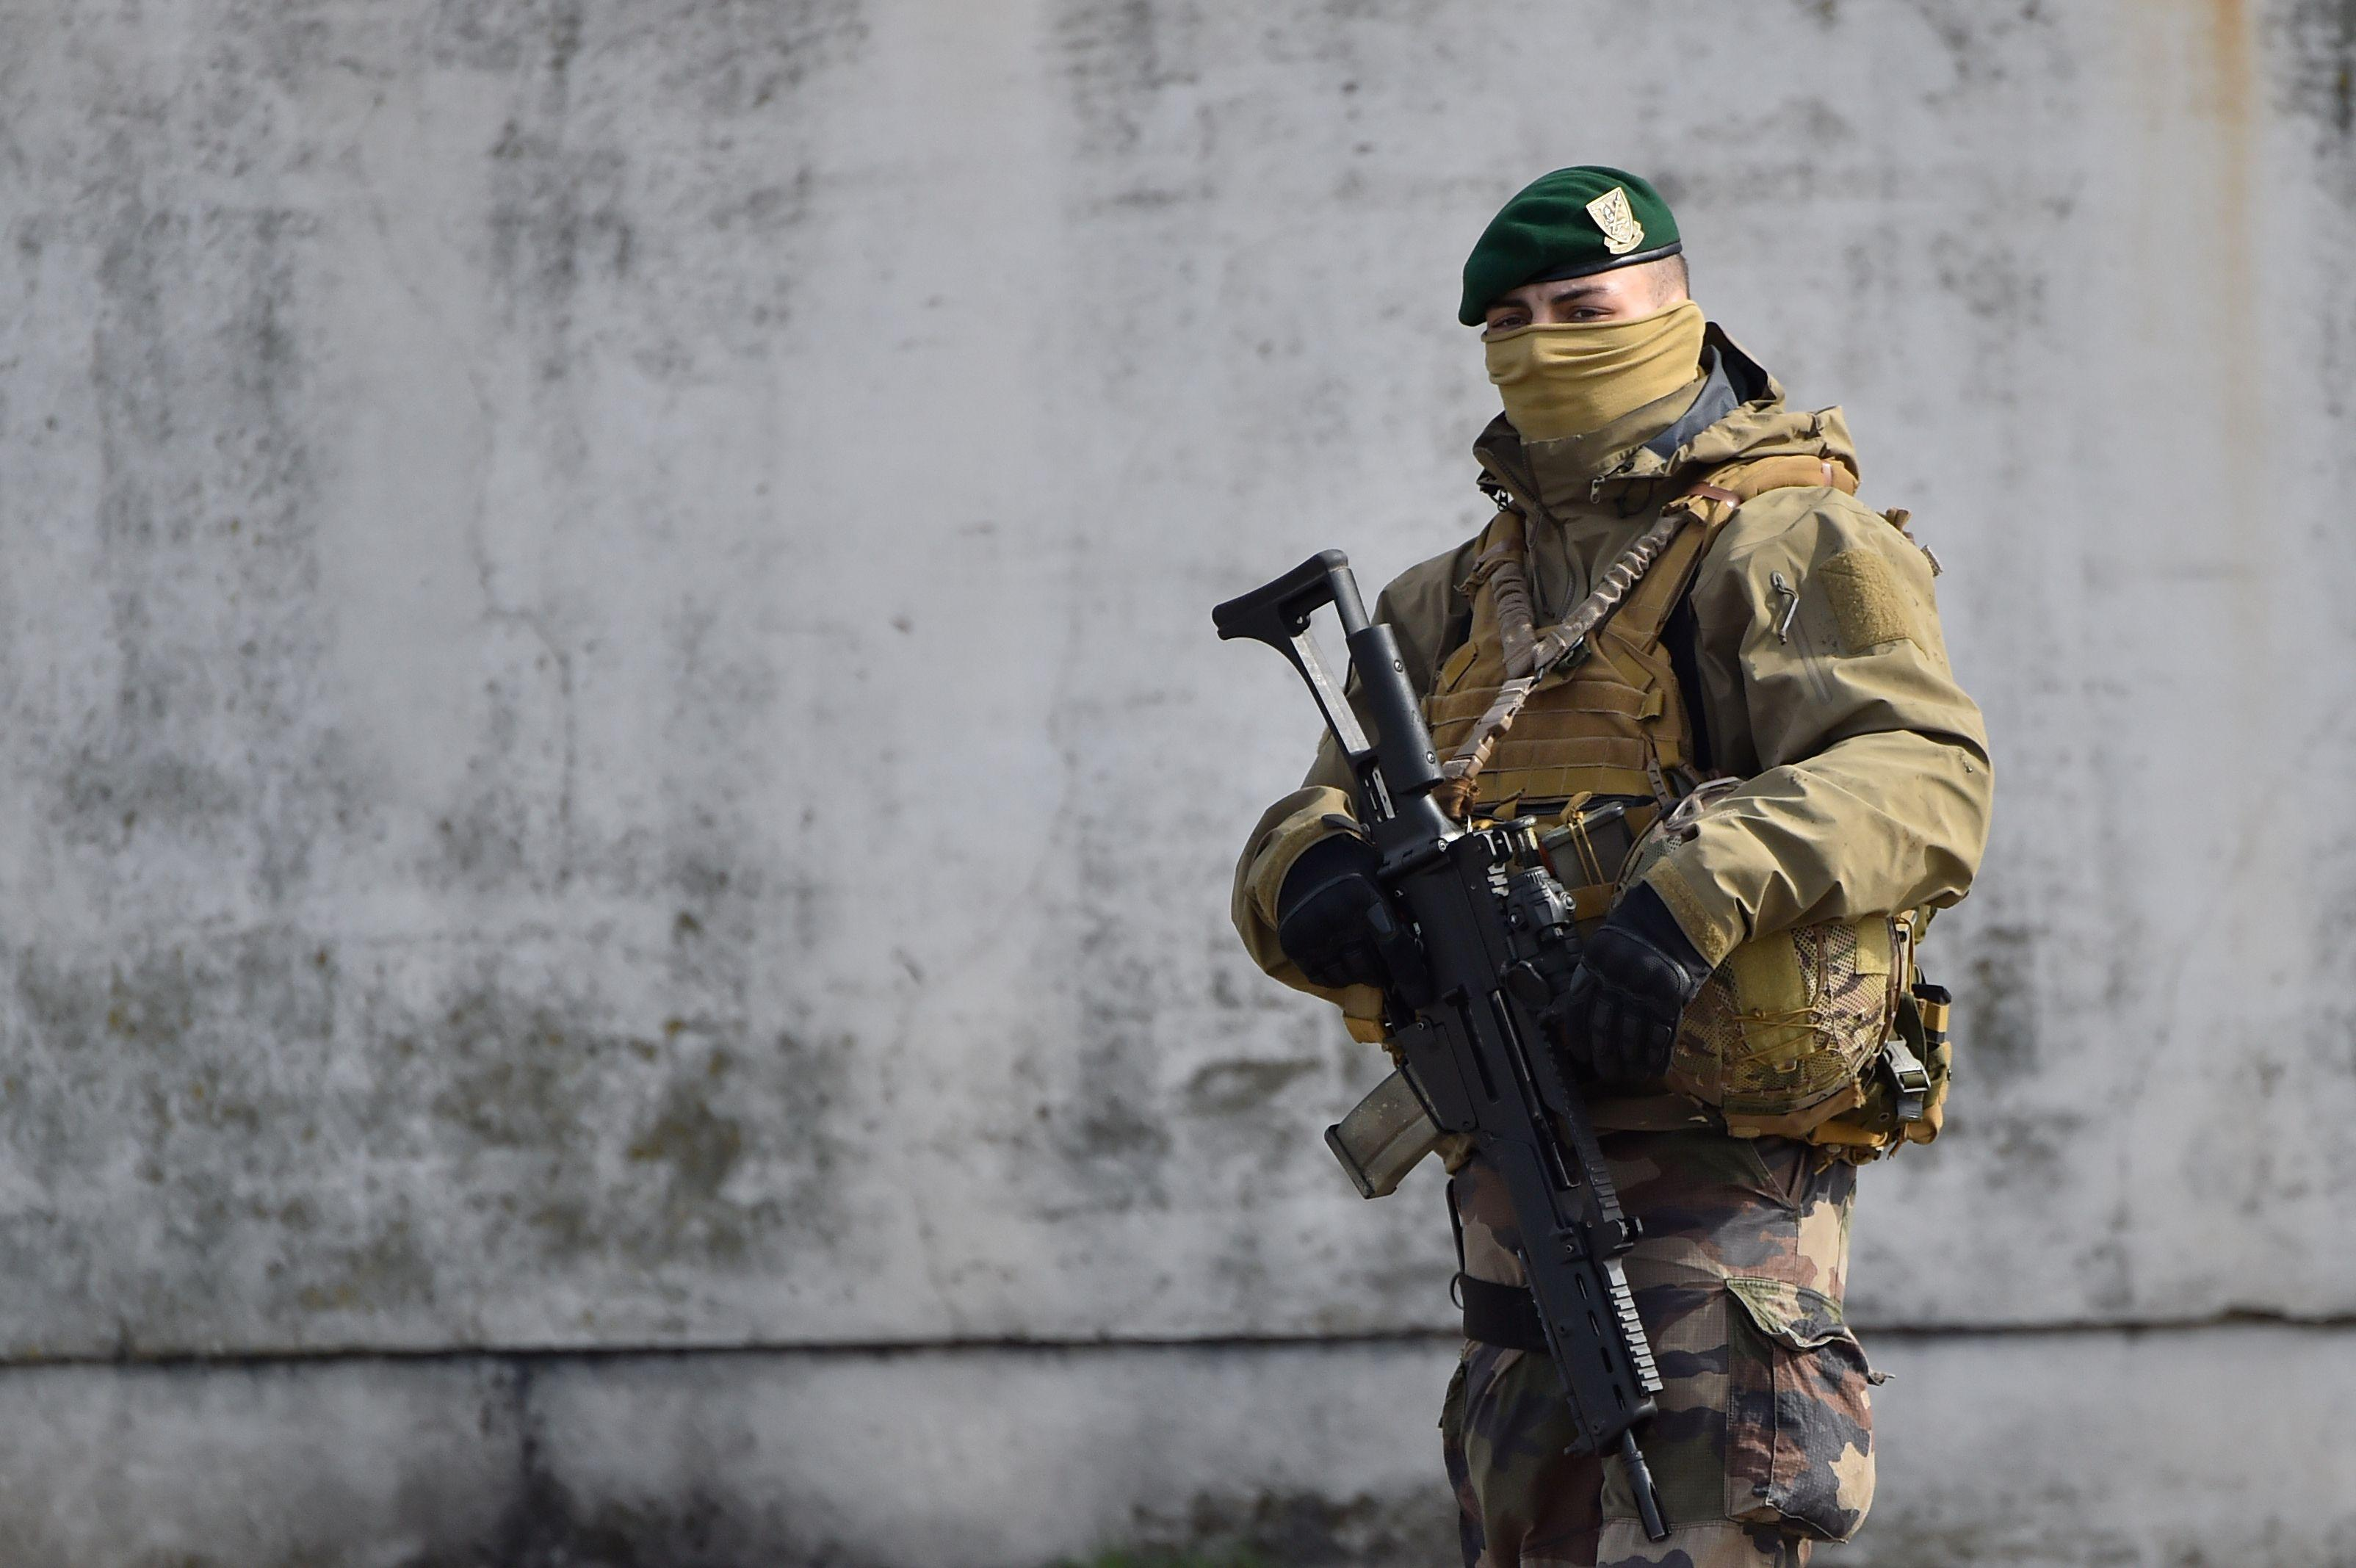 French army special forces will police the event